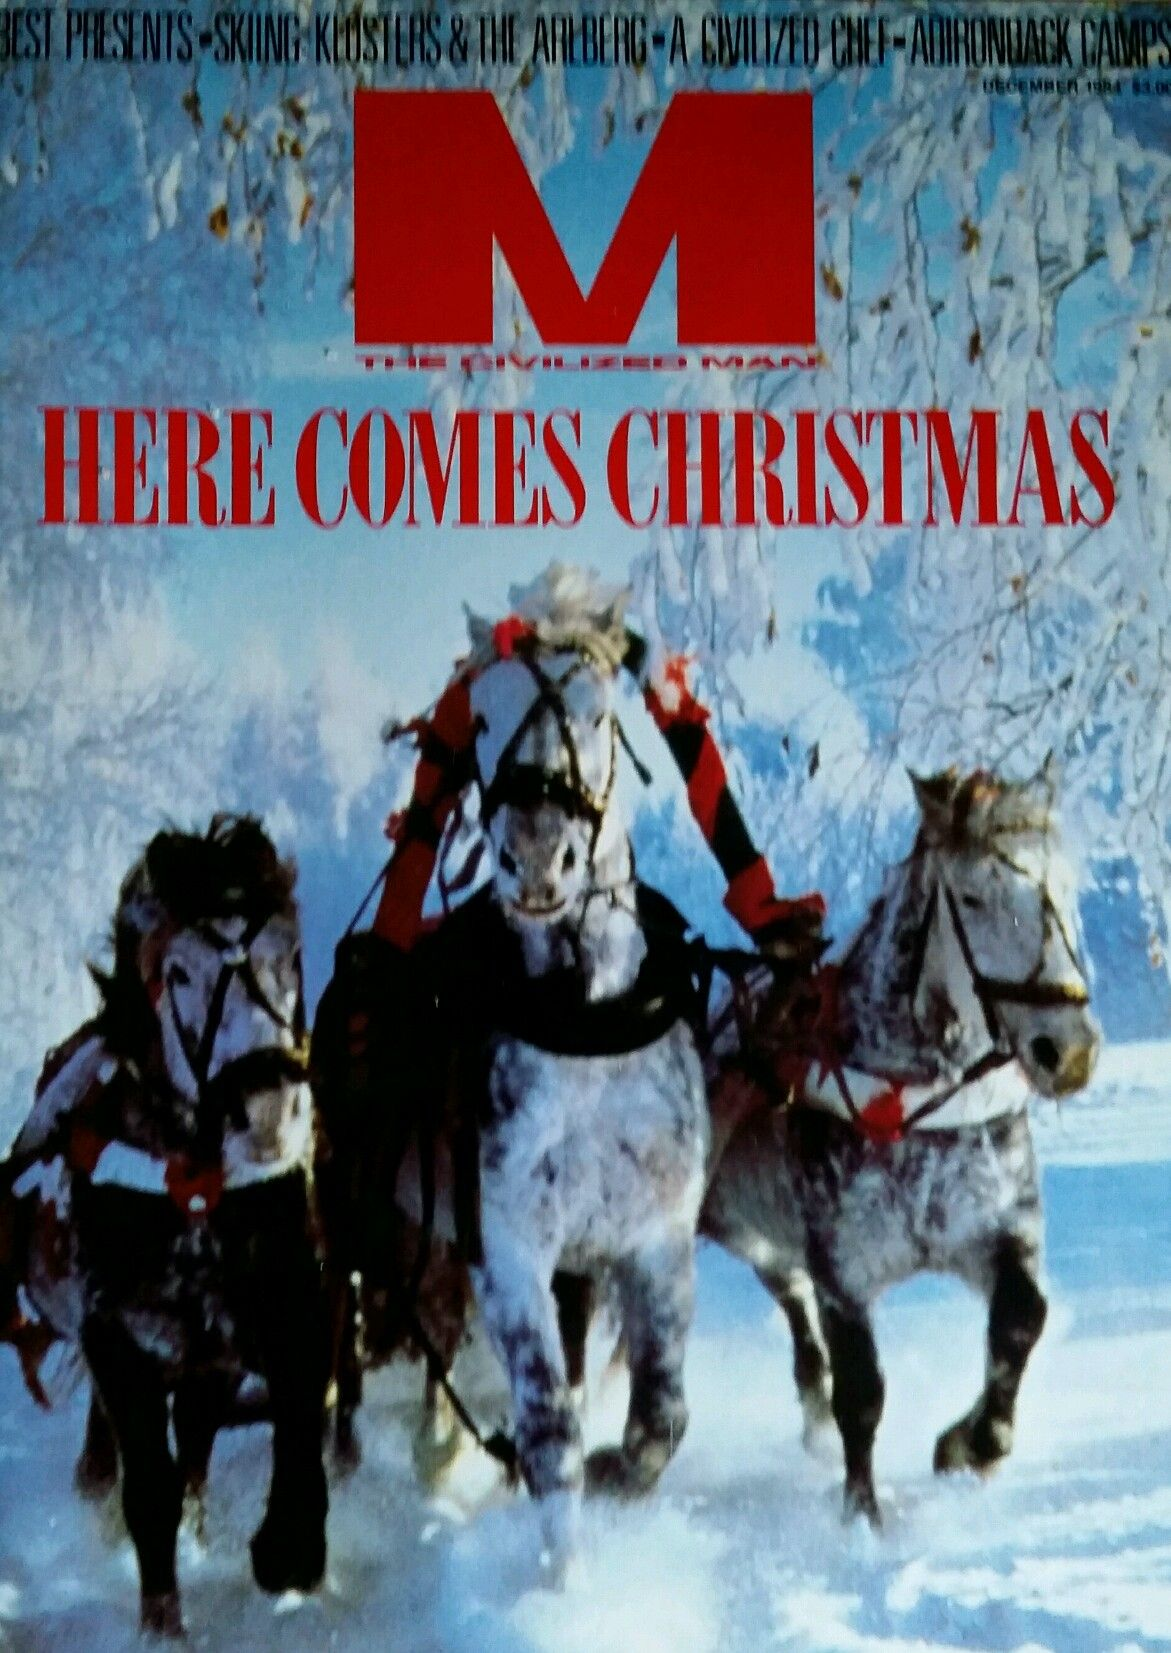 'M' was a short-lived men's lifestyle magazine published between 1983 and 1991. This cover is from the magazine's Christmas 1984 issue.